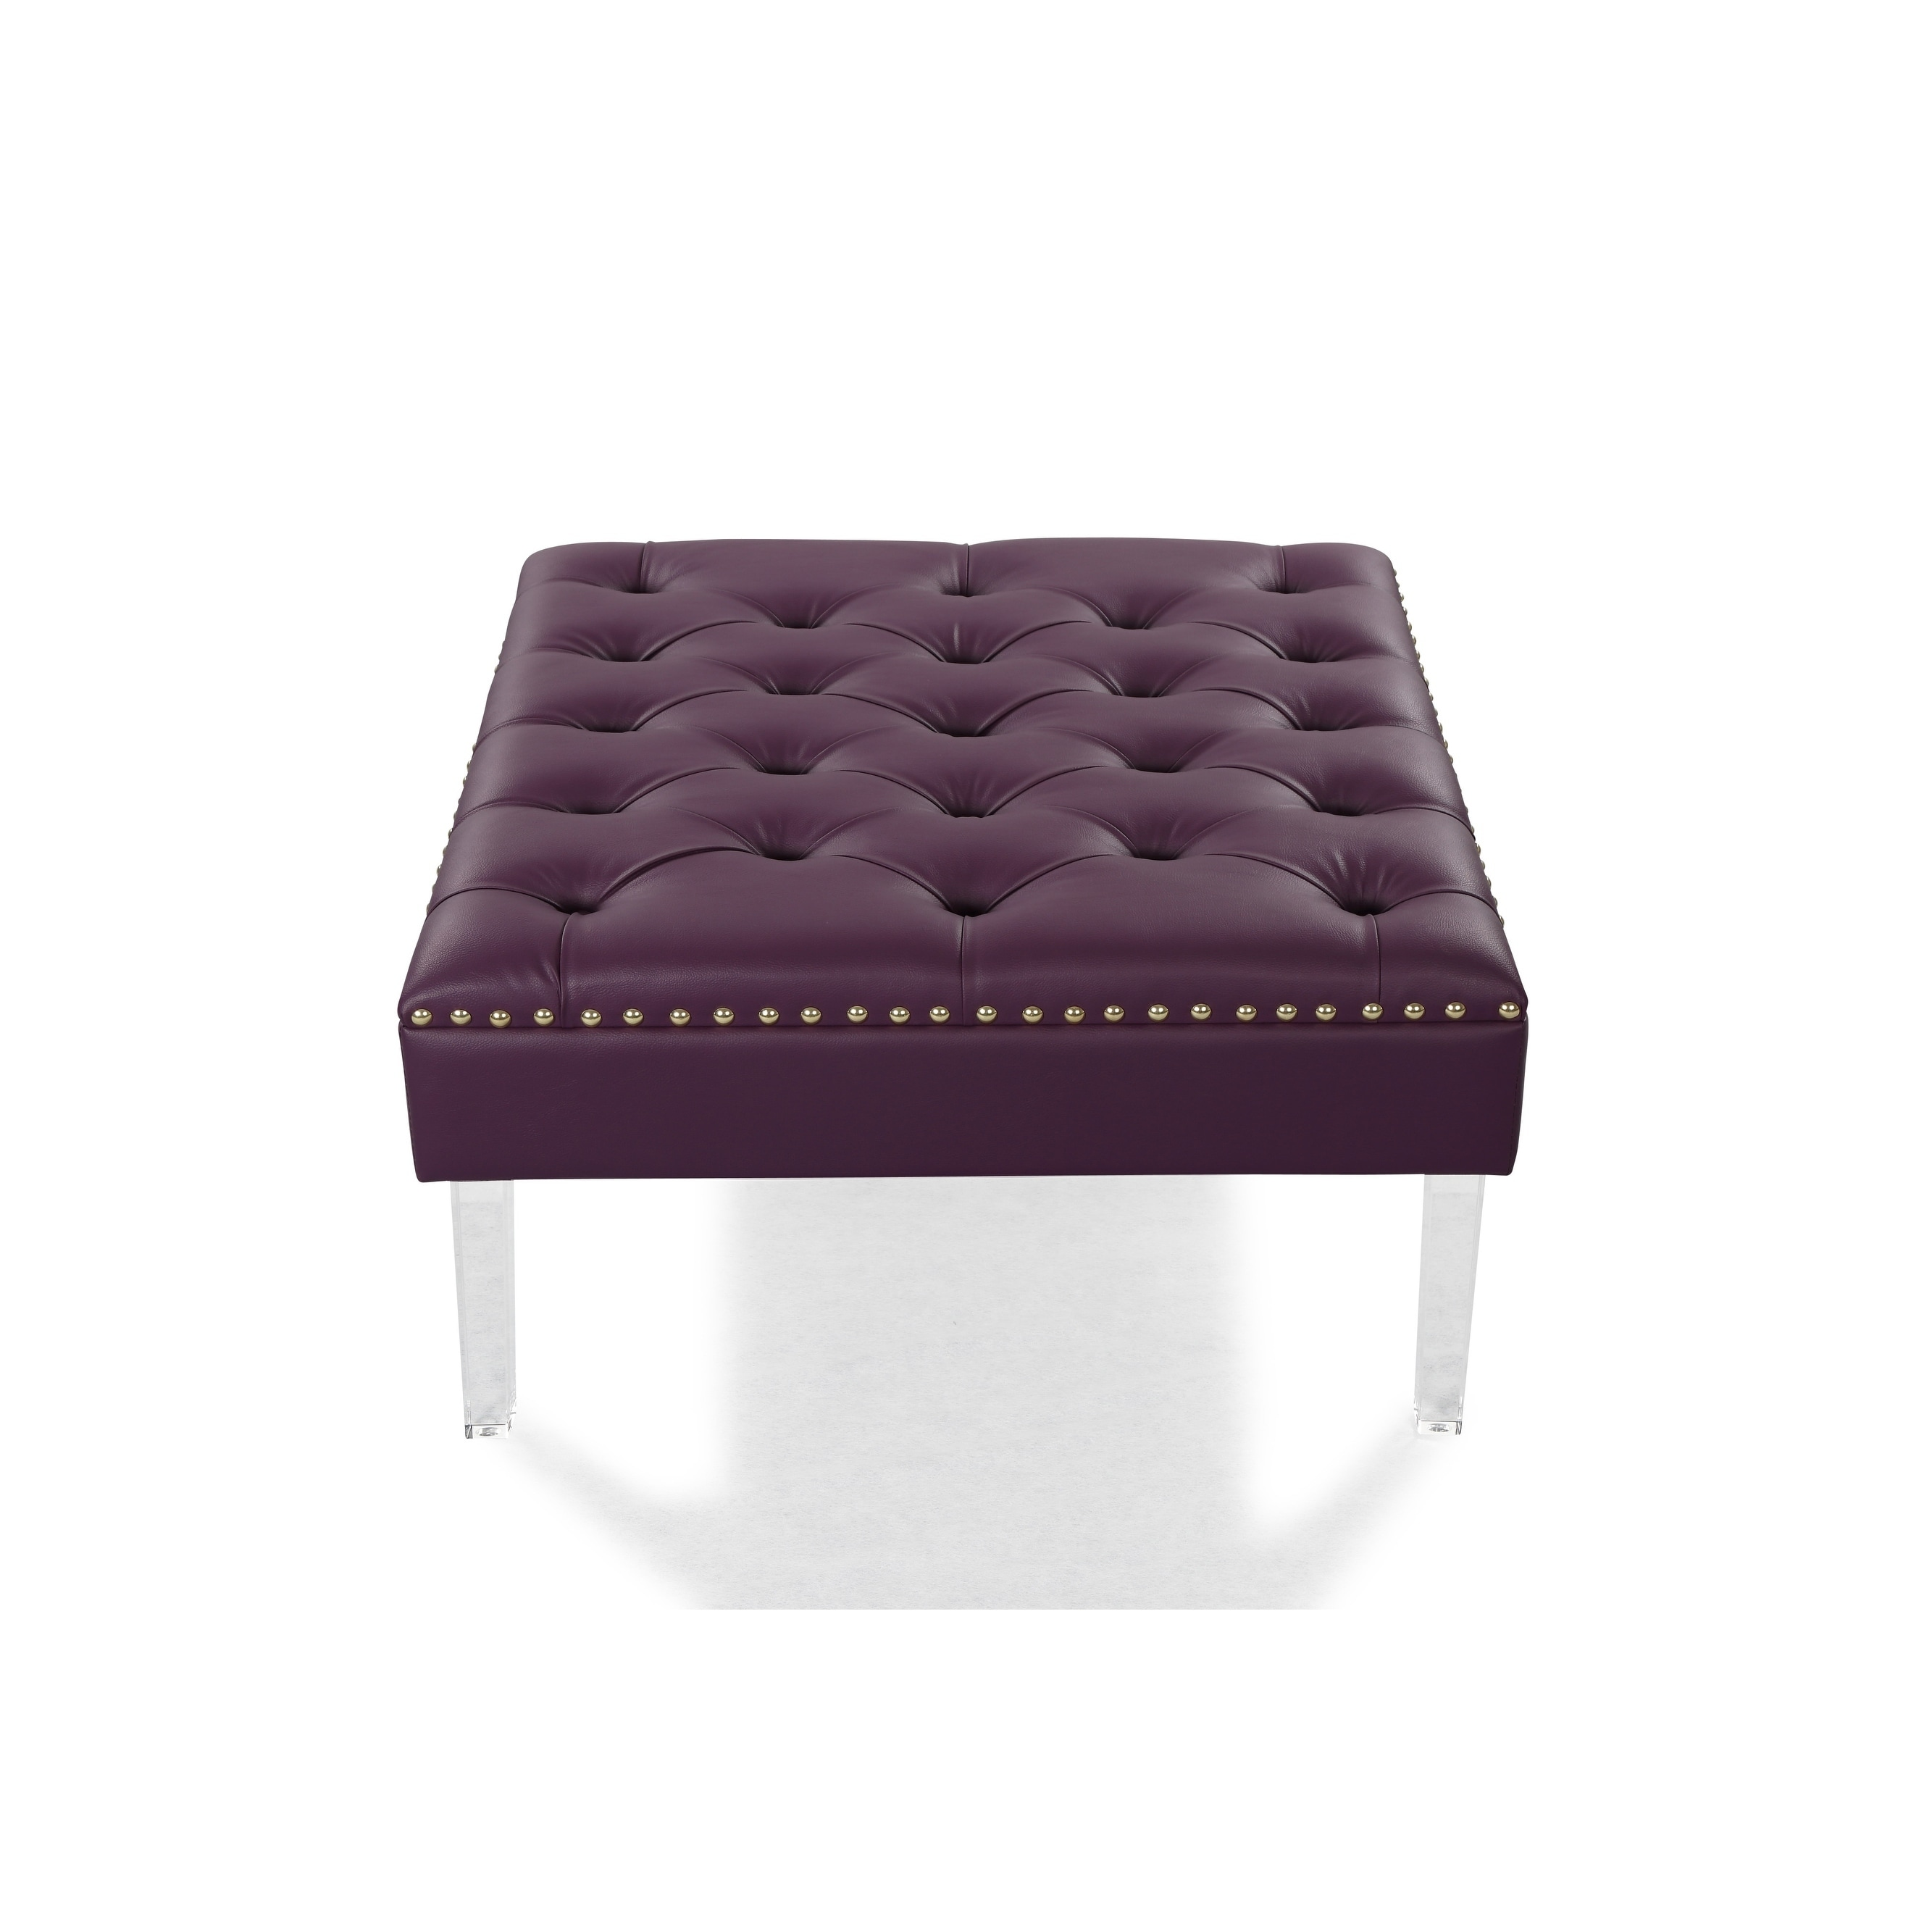 Chic Home Remi Pu Leather On Tufted Square Ottoman